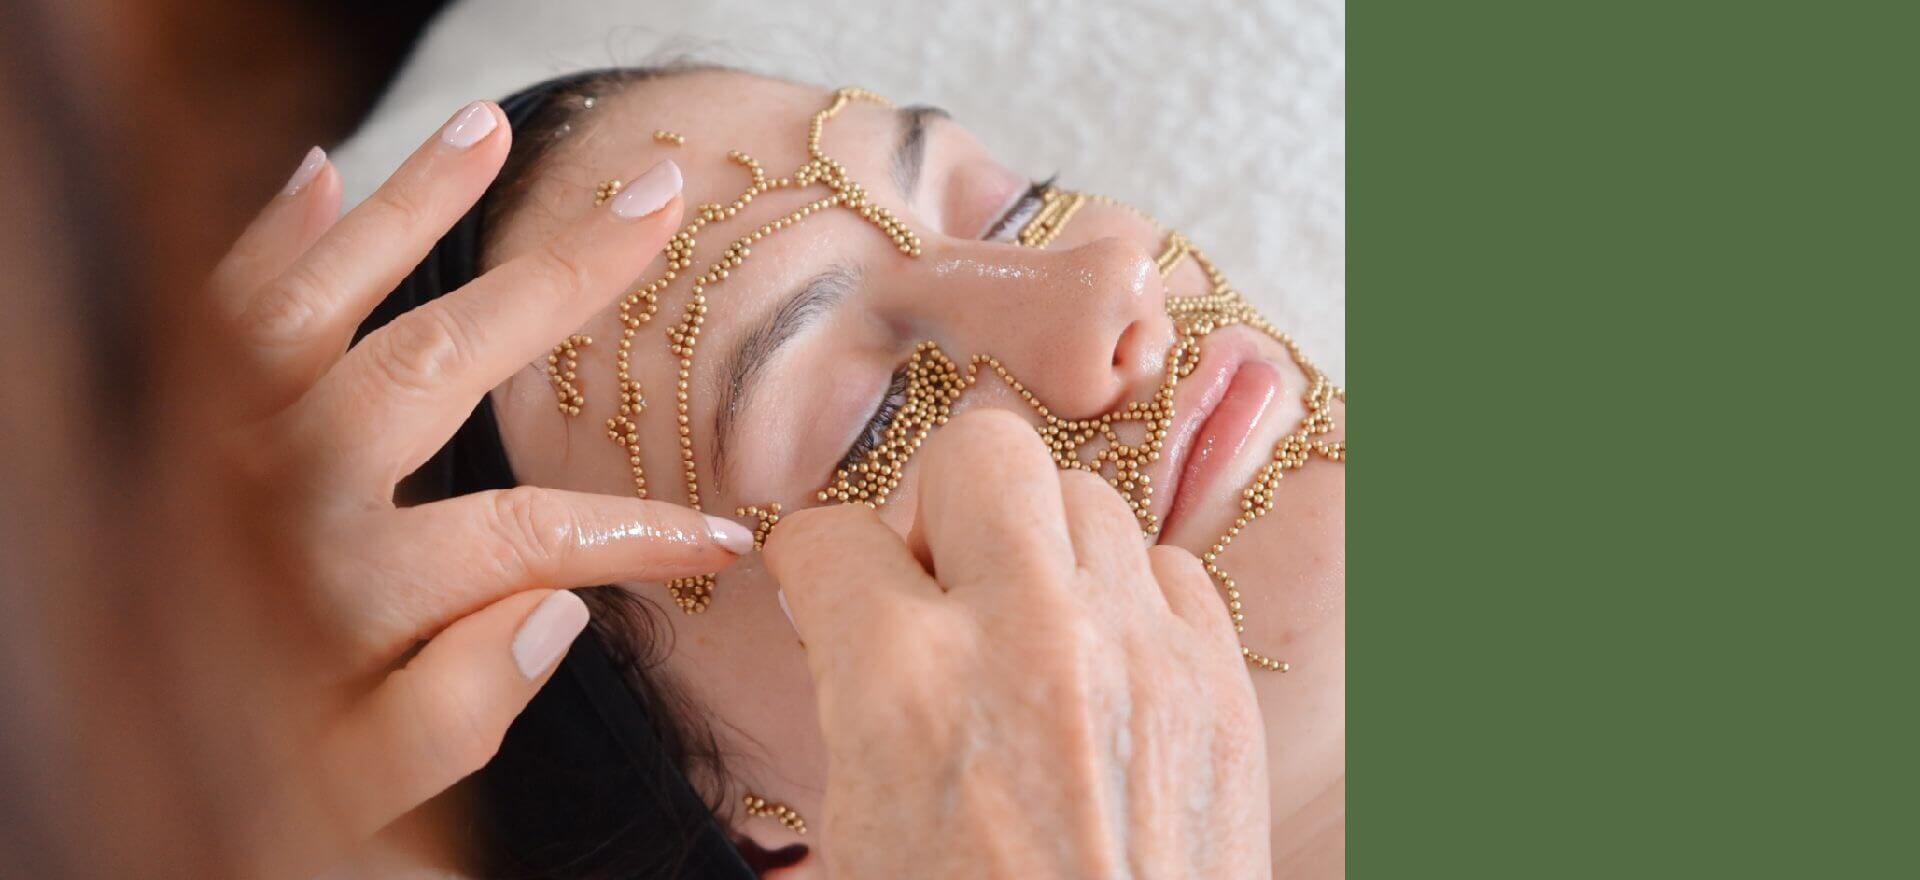 Find a Qi beauty practitioner  -